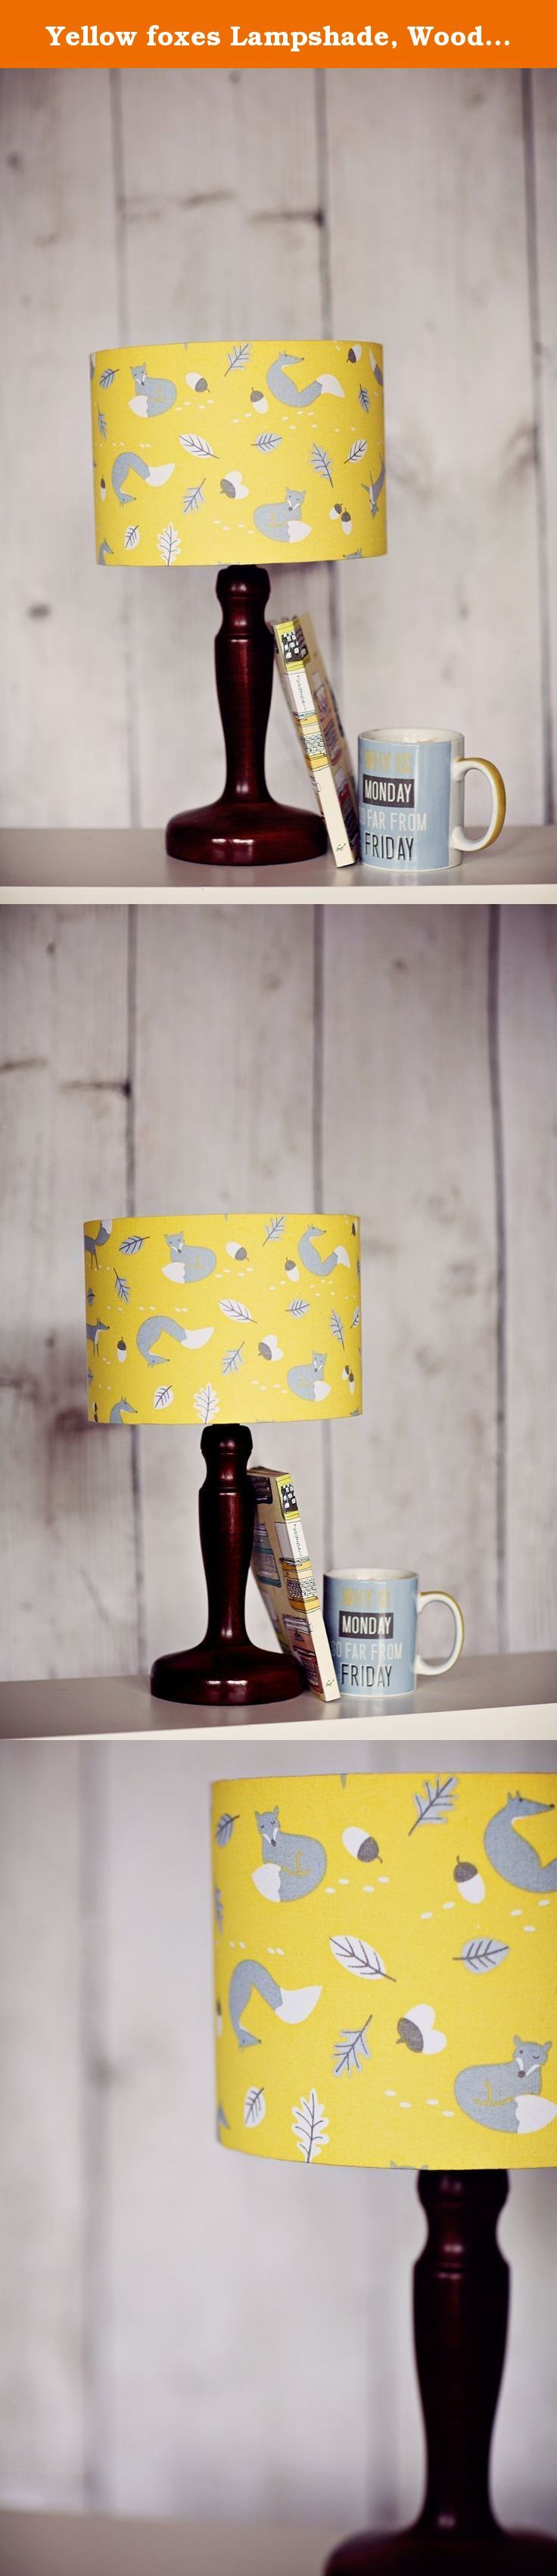 Yellow foxes Lampshade, Woodland lampshade, Fox lamp, Animal lamp shade. This lampshade has a contemporary feel with a beautiful yellow fabric featuring grey foxes. The shade will also look complimentary with the other shades in the range. This lampshade would be a wonderful addition to any room, giving the room a feeling of spring and giving off a beautiful glow when lit. If you would like a swatch of the fabric please send me a message. All of the lampshades are lovingly handmade in my...